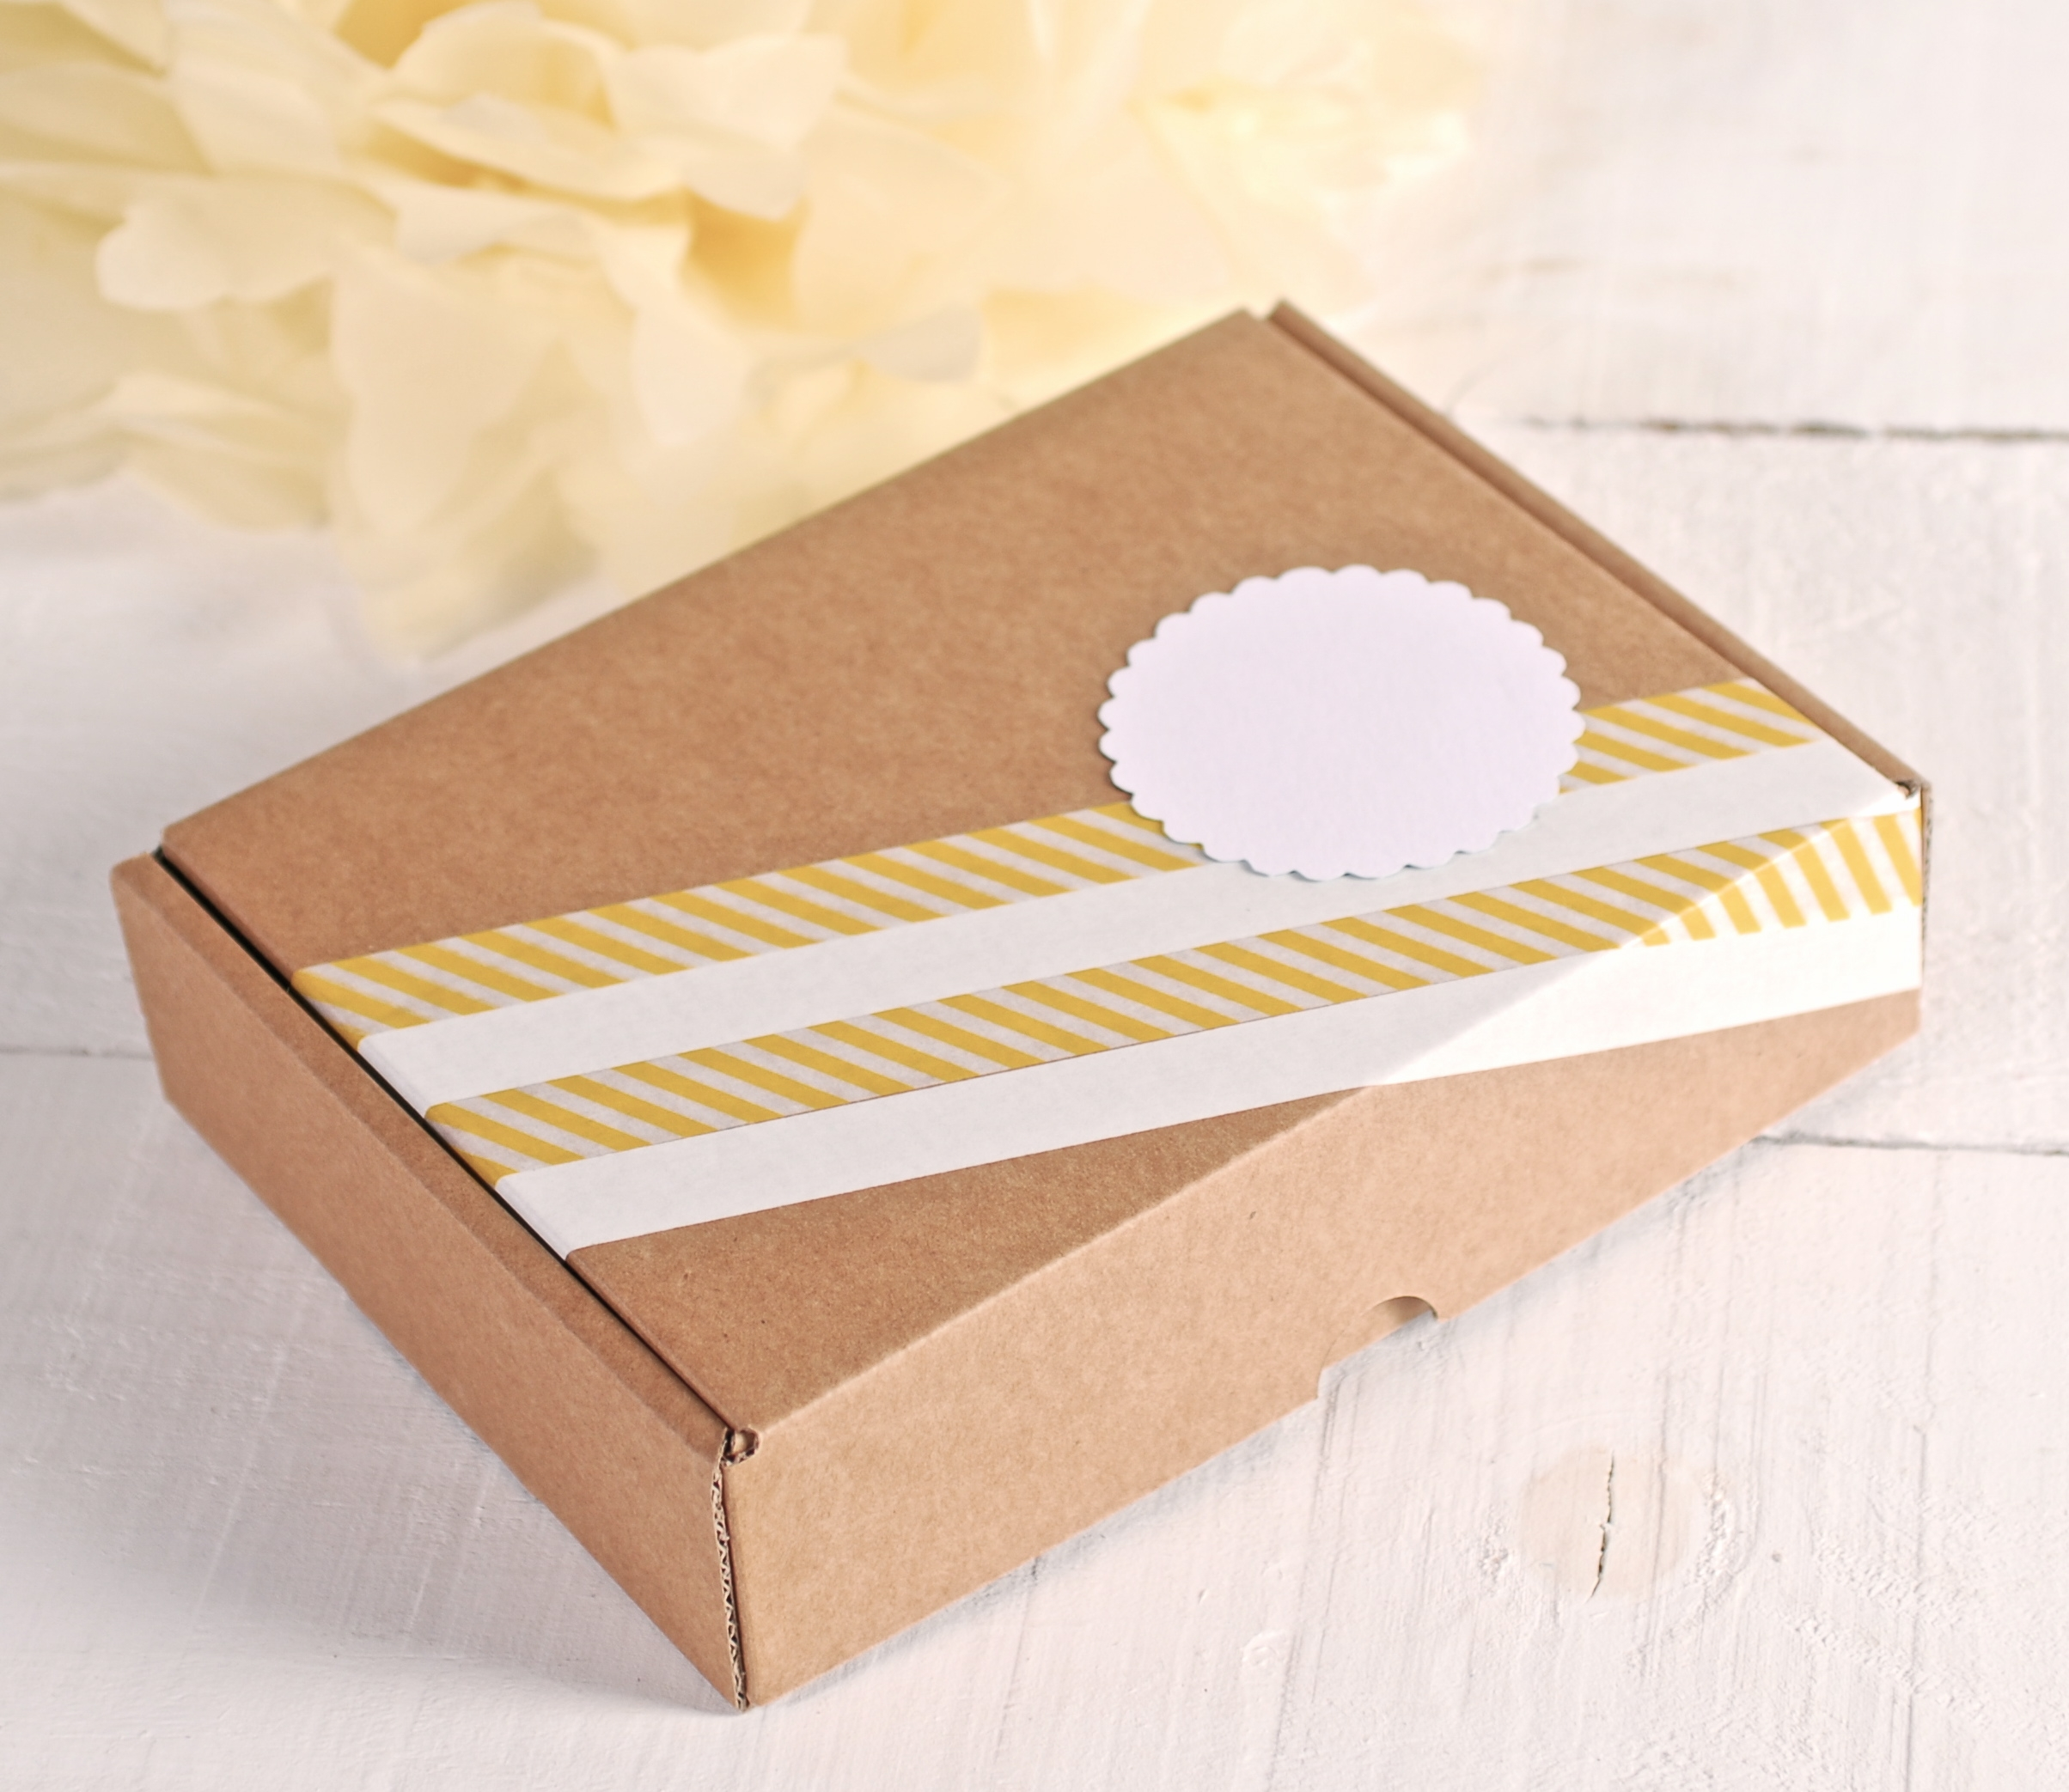 Rectangular box with yellow and white decoration - SelfPackaging